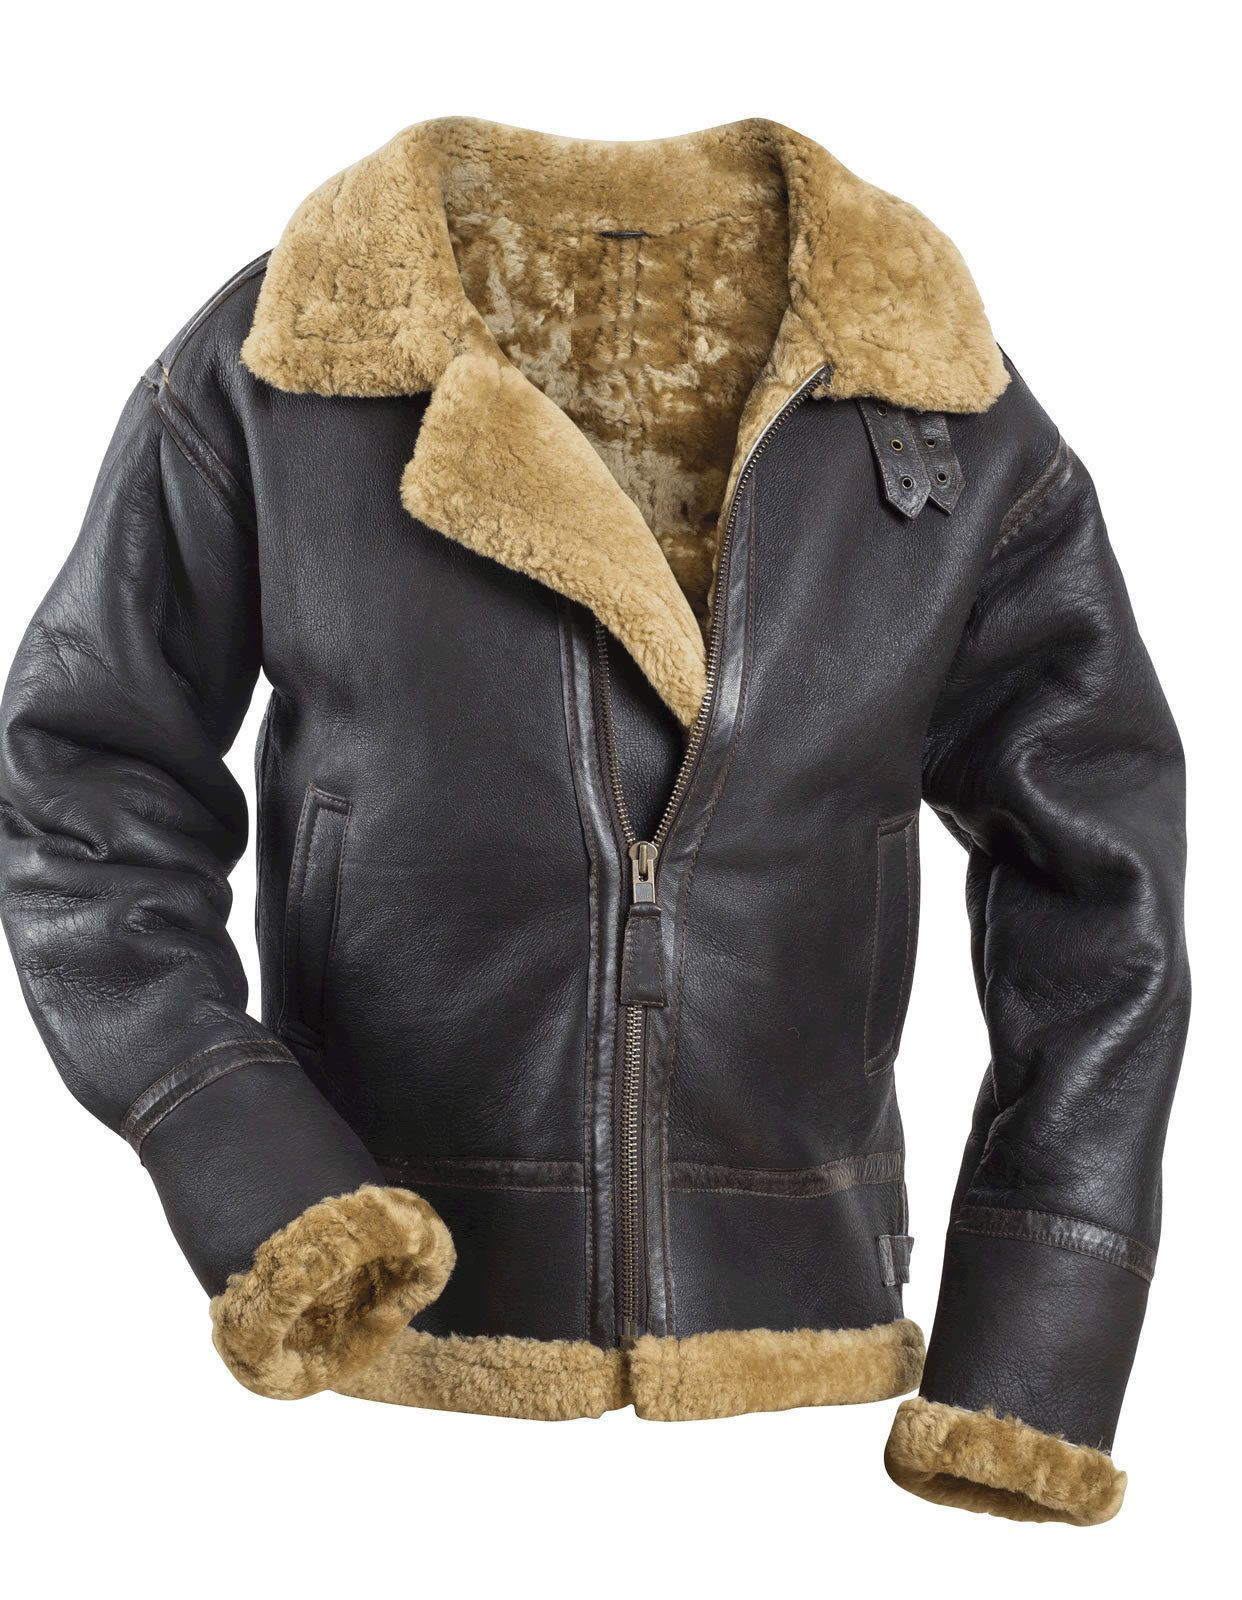 180cac945e3 RAF Sheepskin Bomber Jacket follows the 1938 Irvin Airchute Co. pattern. It  was worn by the pilots of the RAF during the Battle of Britain.